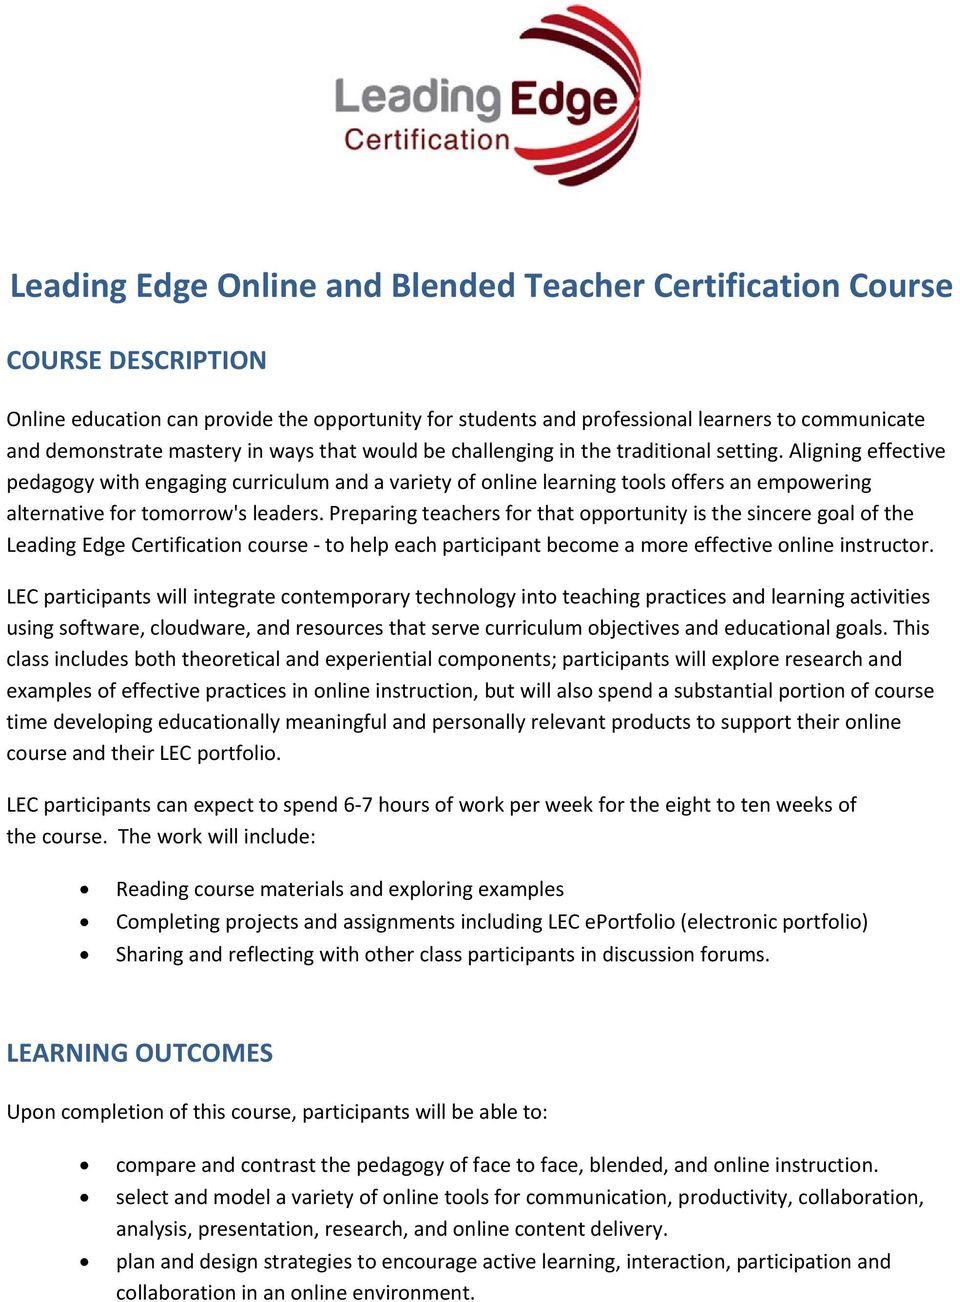 Leading Edge Online And Blended Teacher Certification Course Pdf